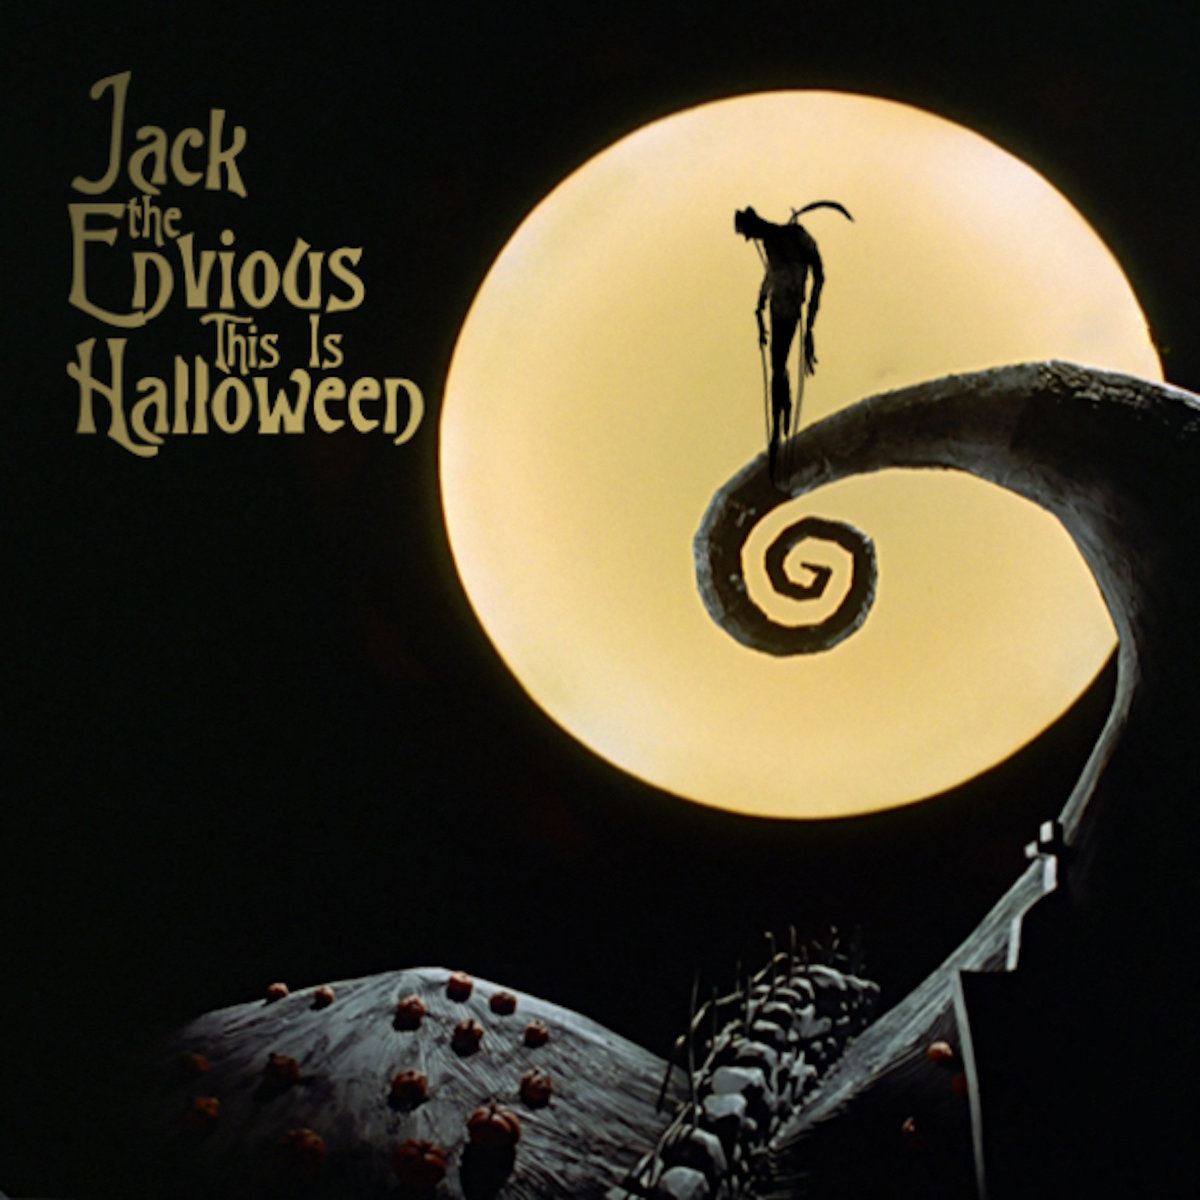 This Is Halloween (The Nightmare Before Christmas) | Jack The Envious